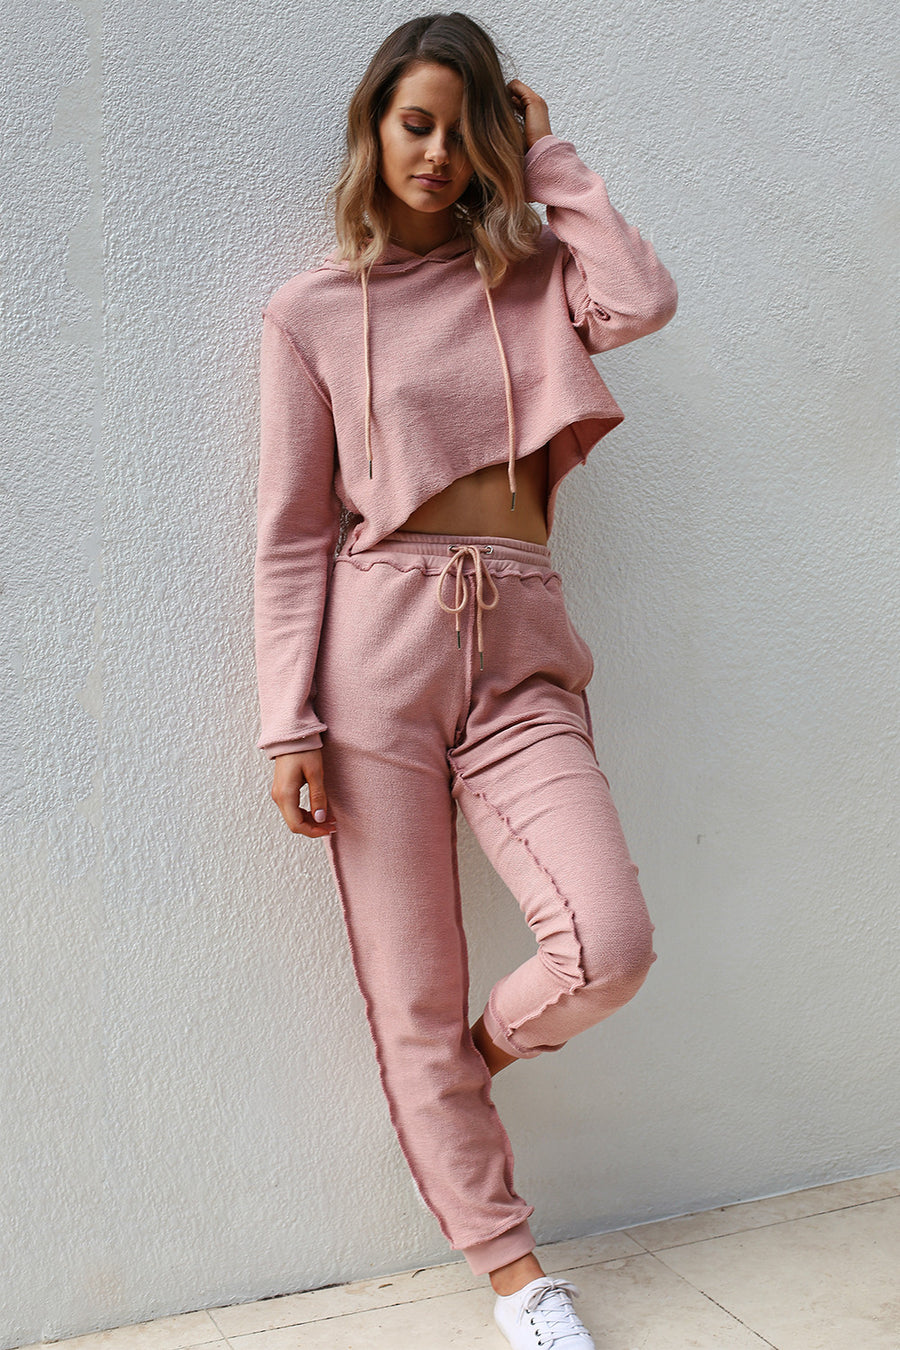 Hadid Jogger Set - HER Empire Fashion Boutique Terrigal & Online